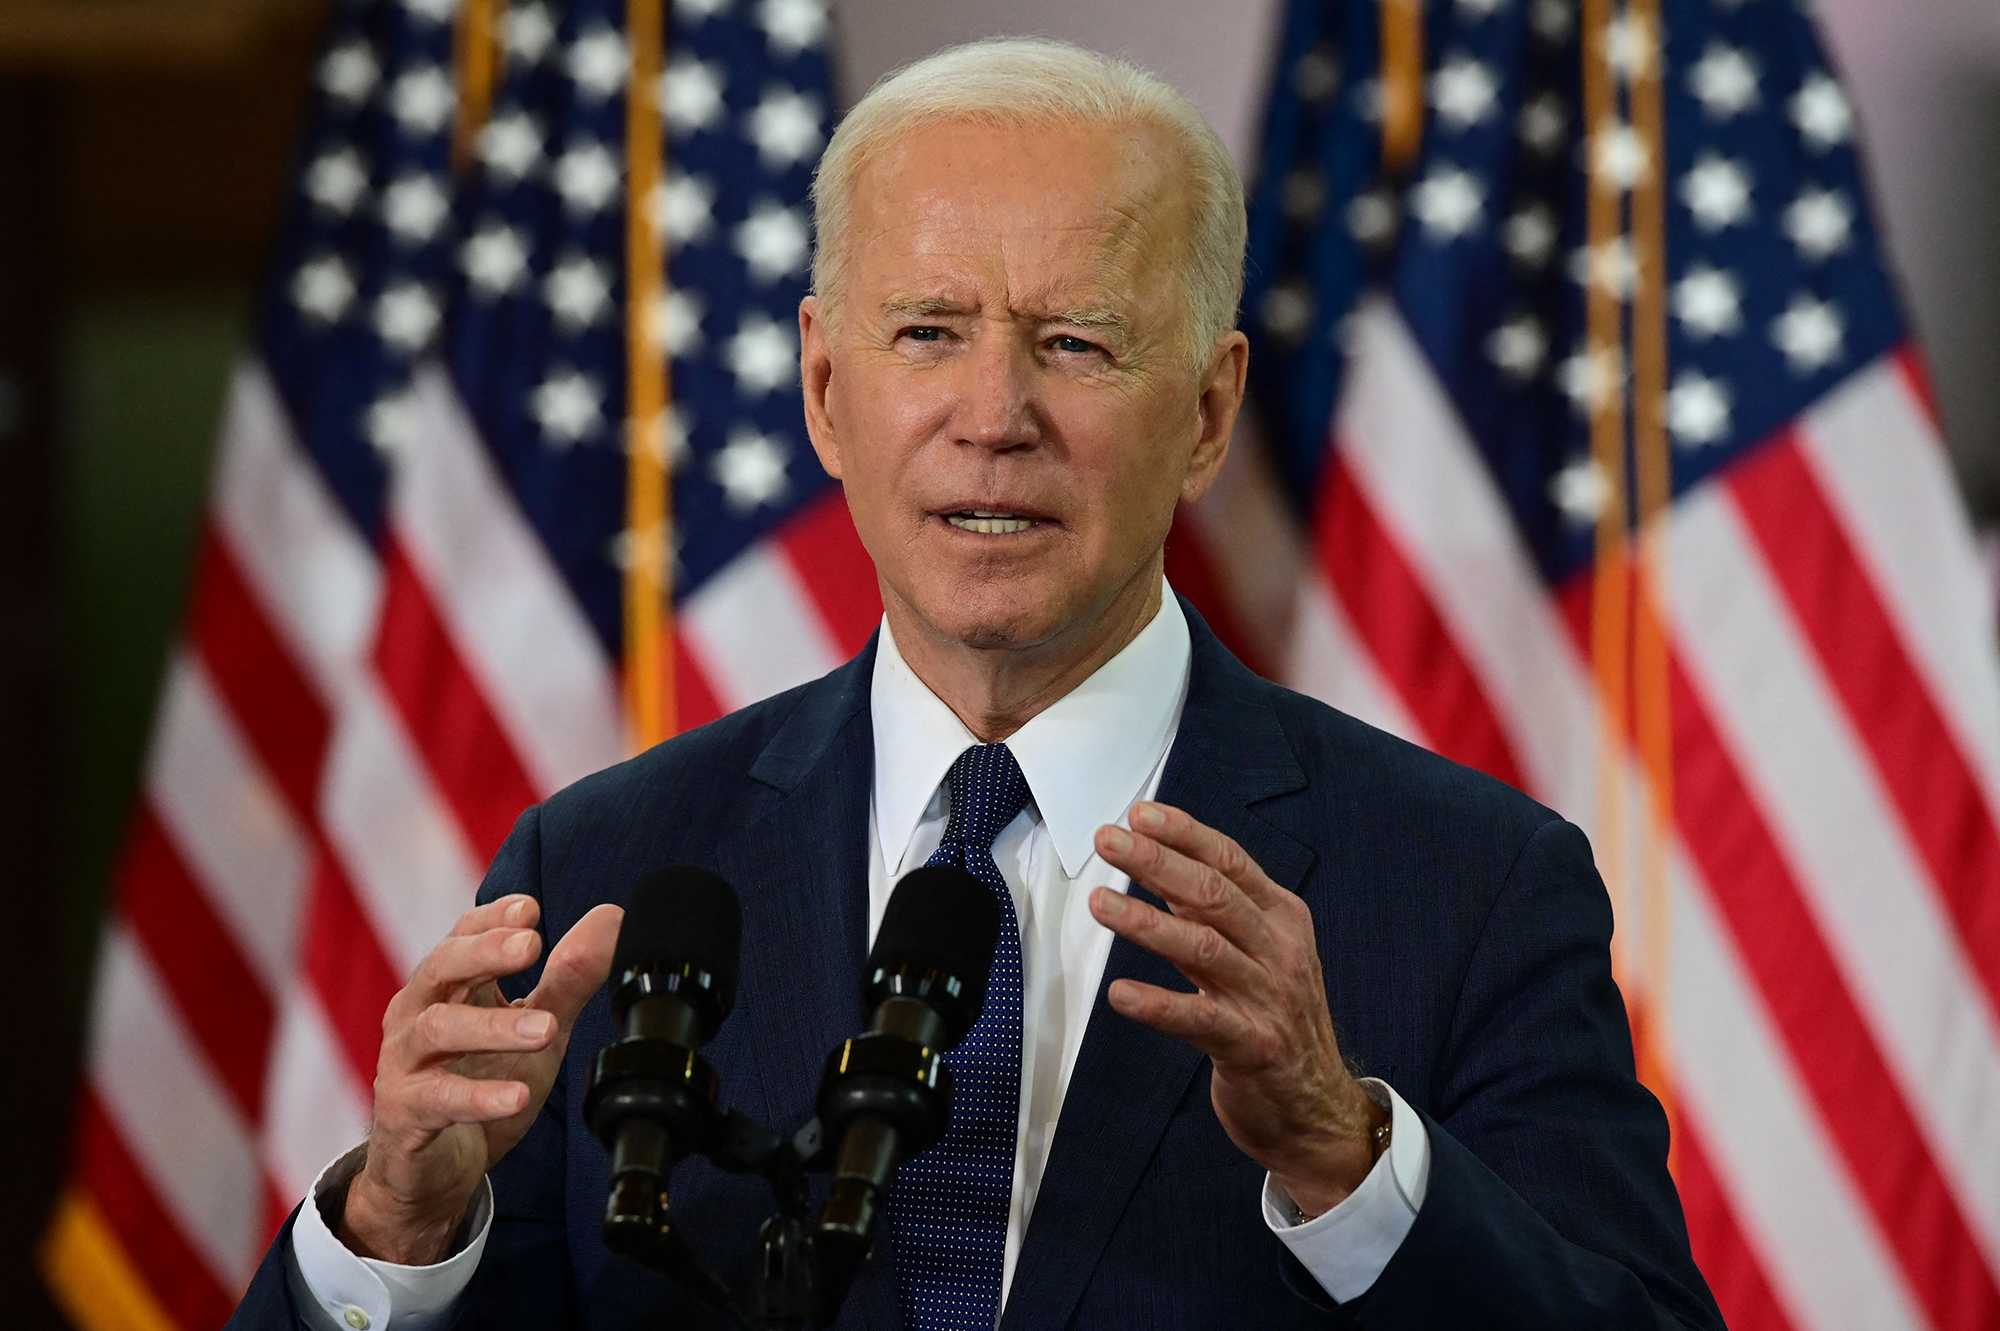 Biden starts infrastructure push by meeting bipartisan group of lawmakers who could help shape $2 trillion proposal